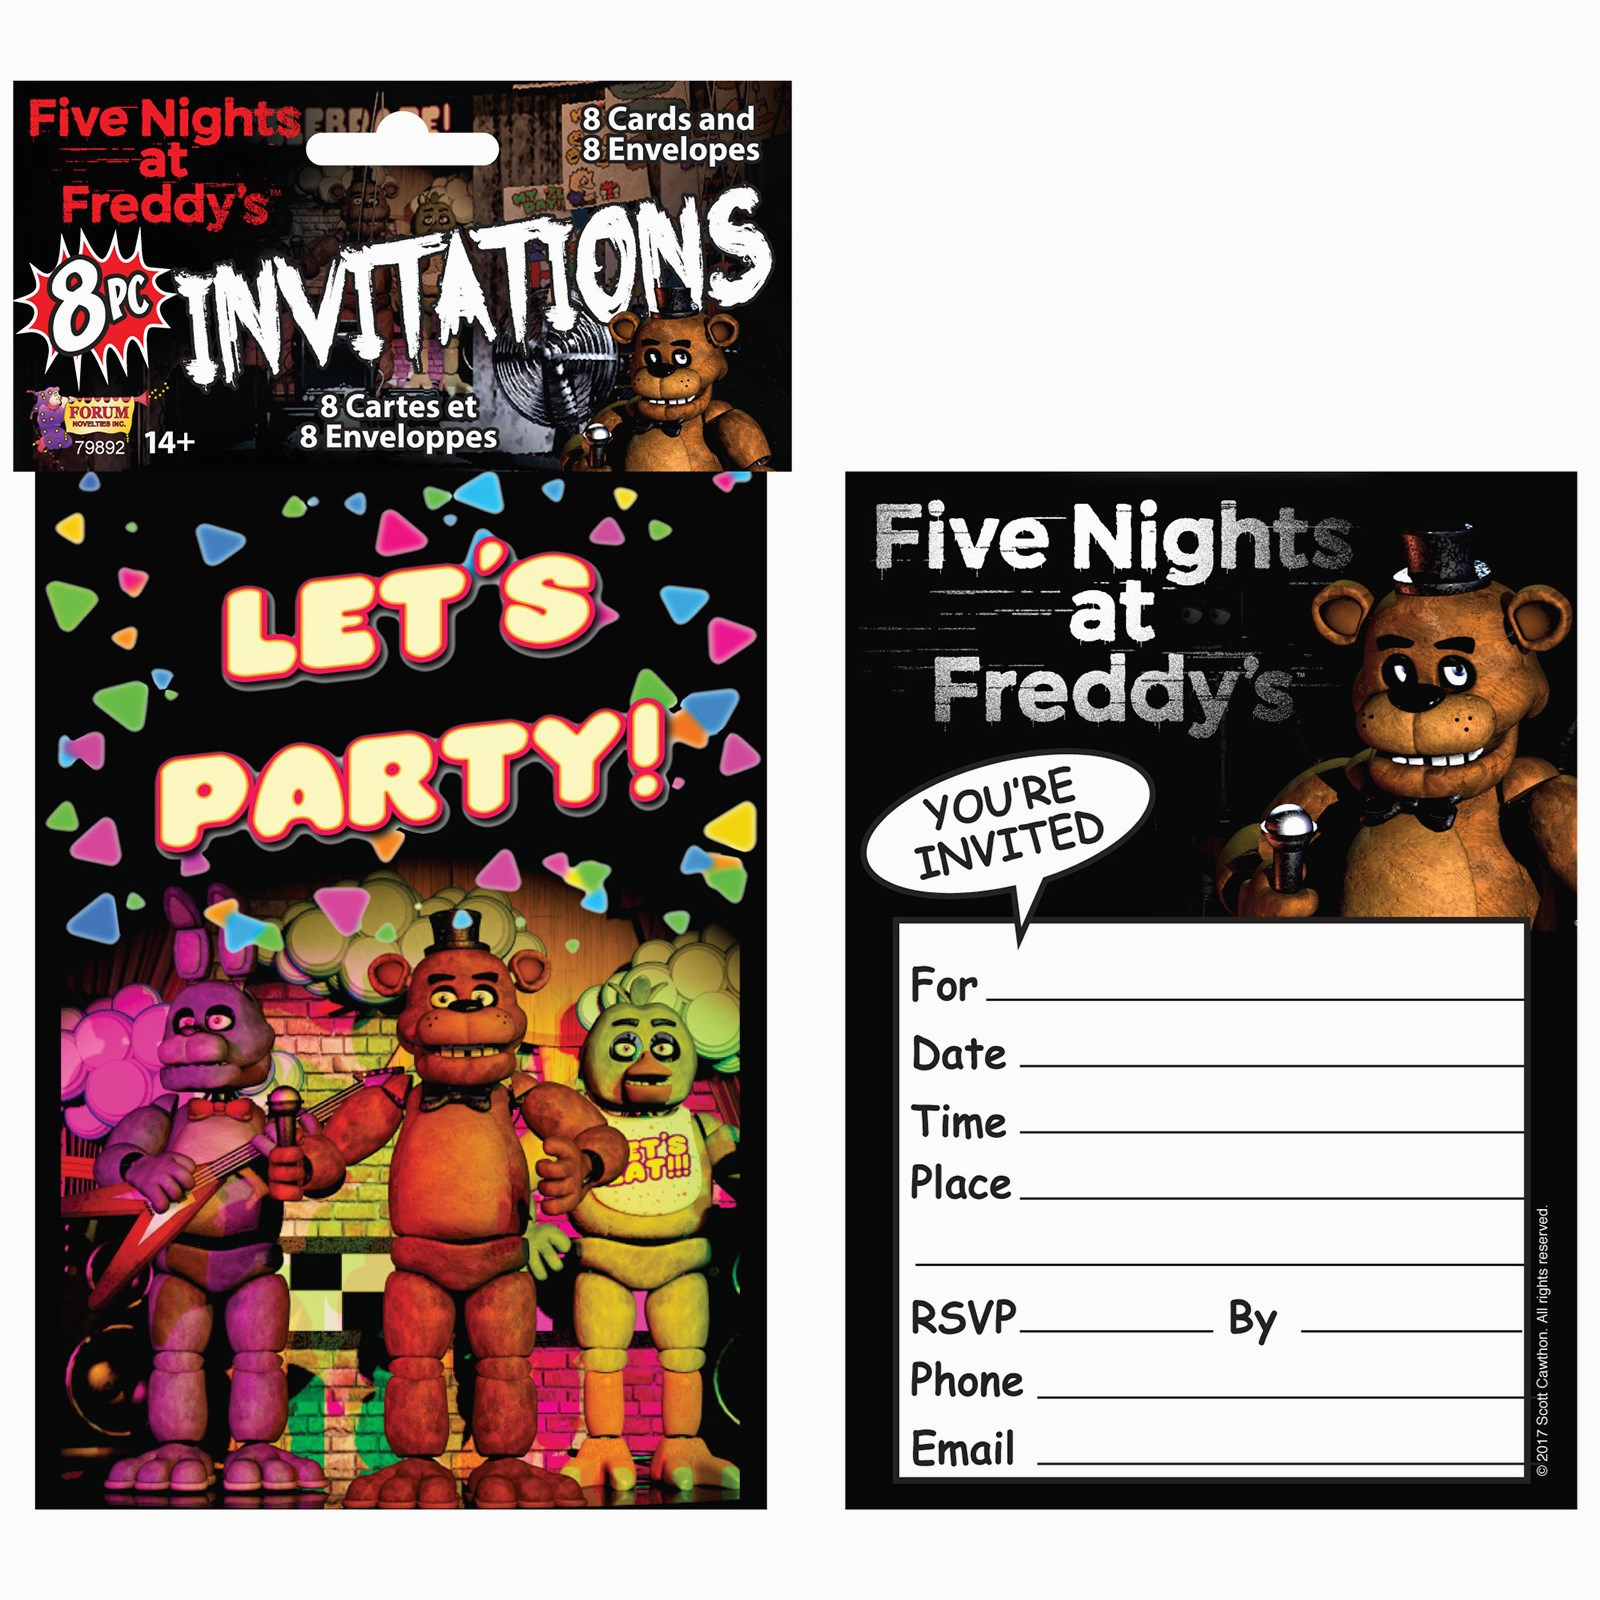 five nights at freddys invitations 8